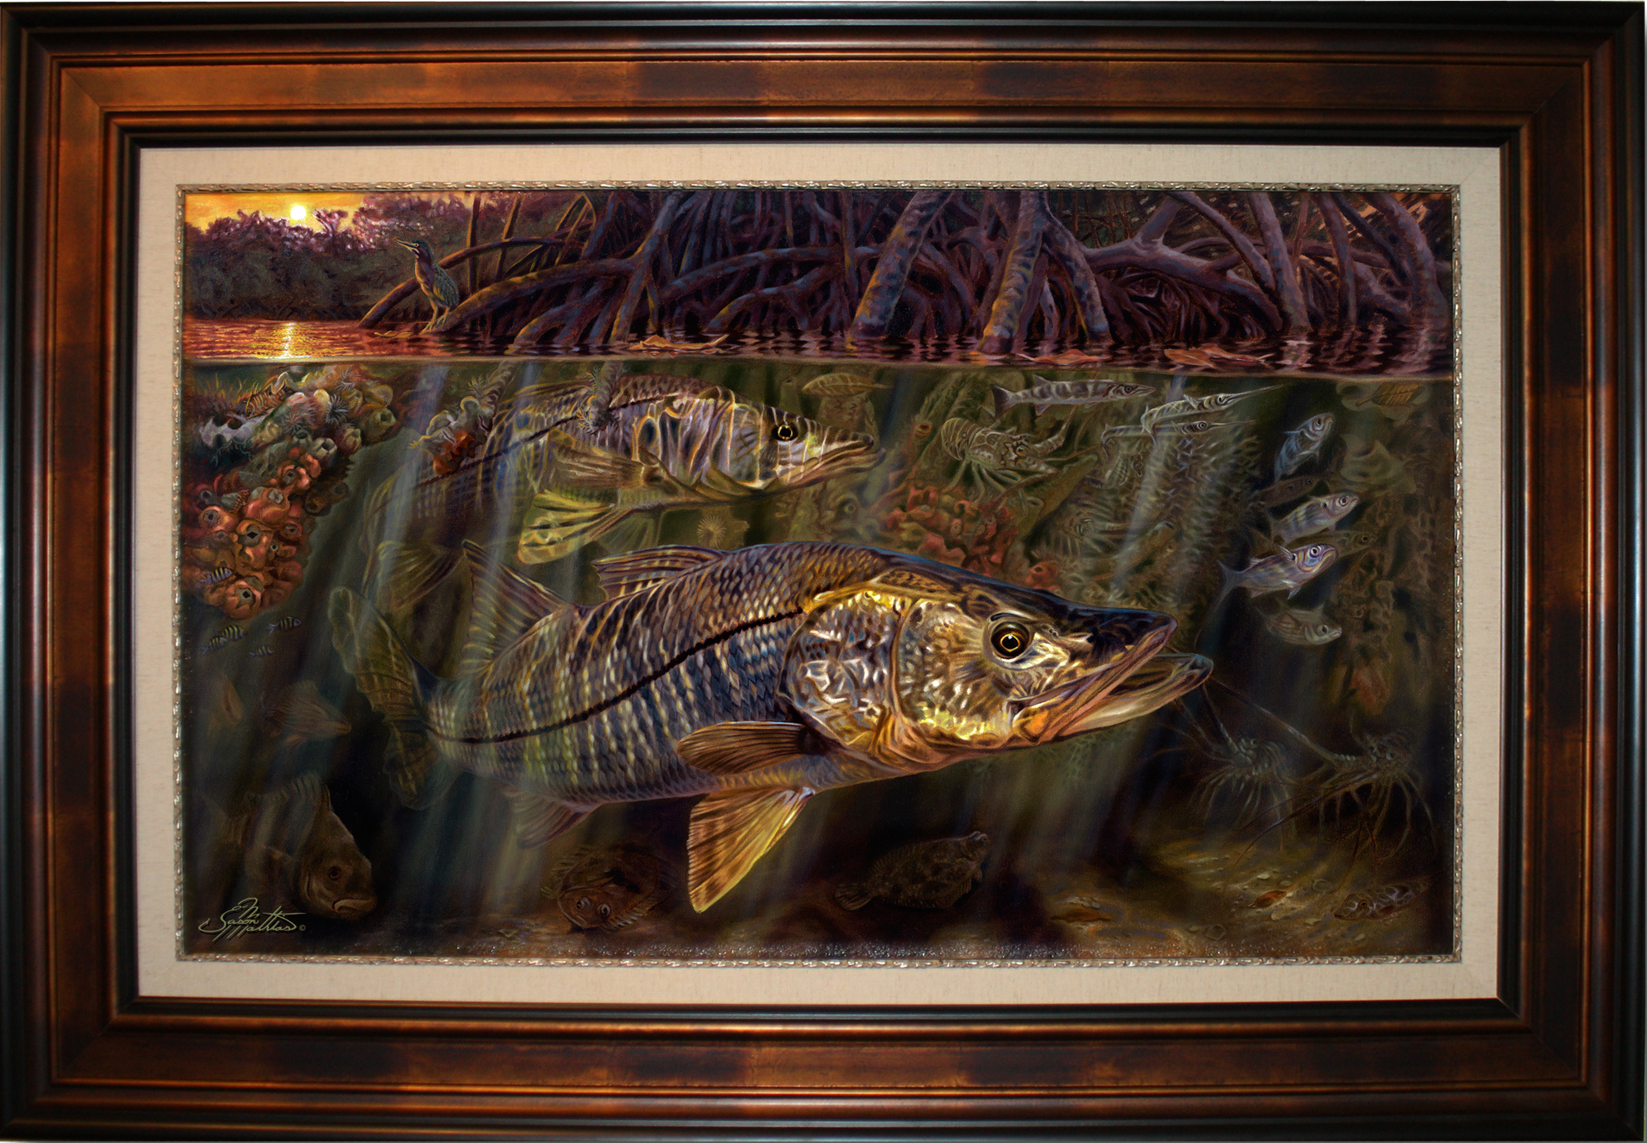 snook-original-painting-jason-mathias-art-gamefish-inshore-mangroves.png